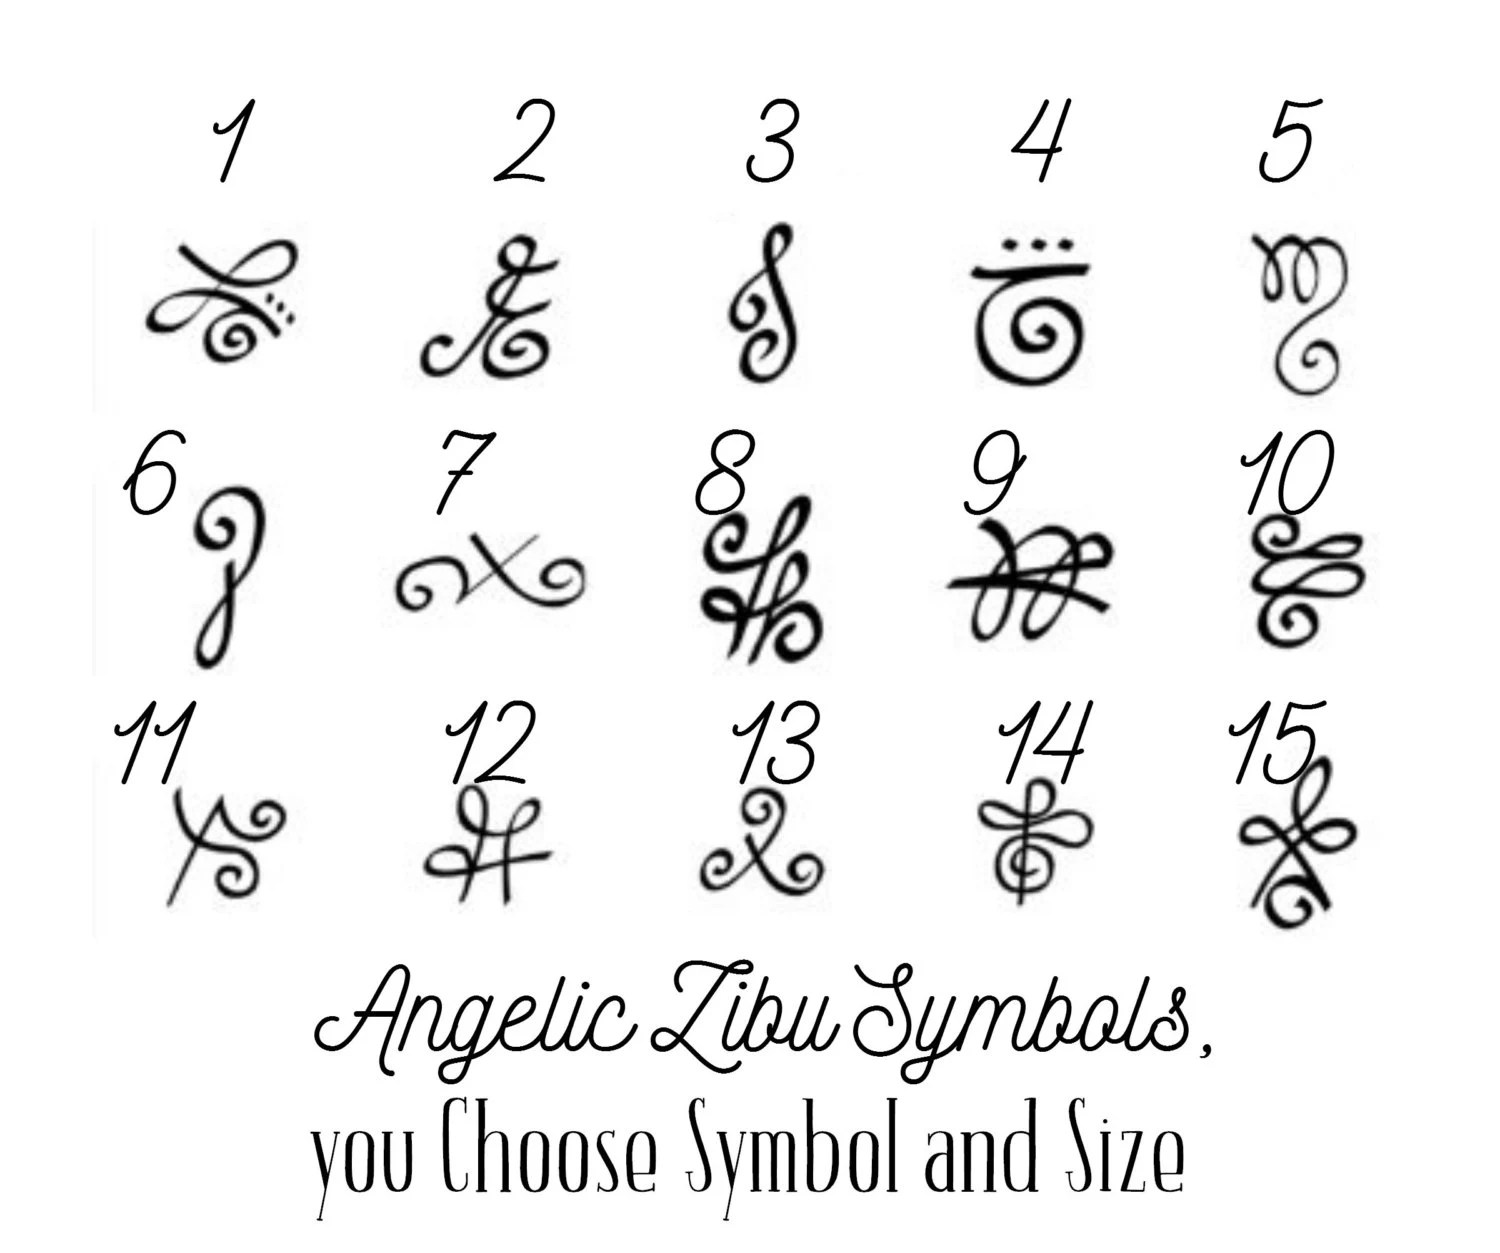 Zibu symbols and their meanings gallery symbol and sign ideas symbols and meanings zibu symbols and meanings buycottarizona buycottarizona